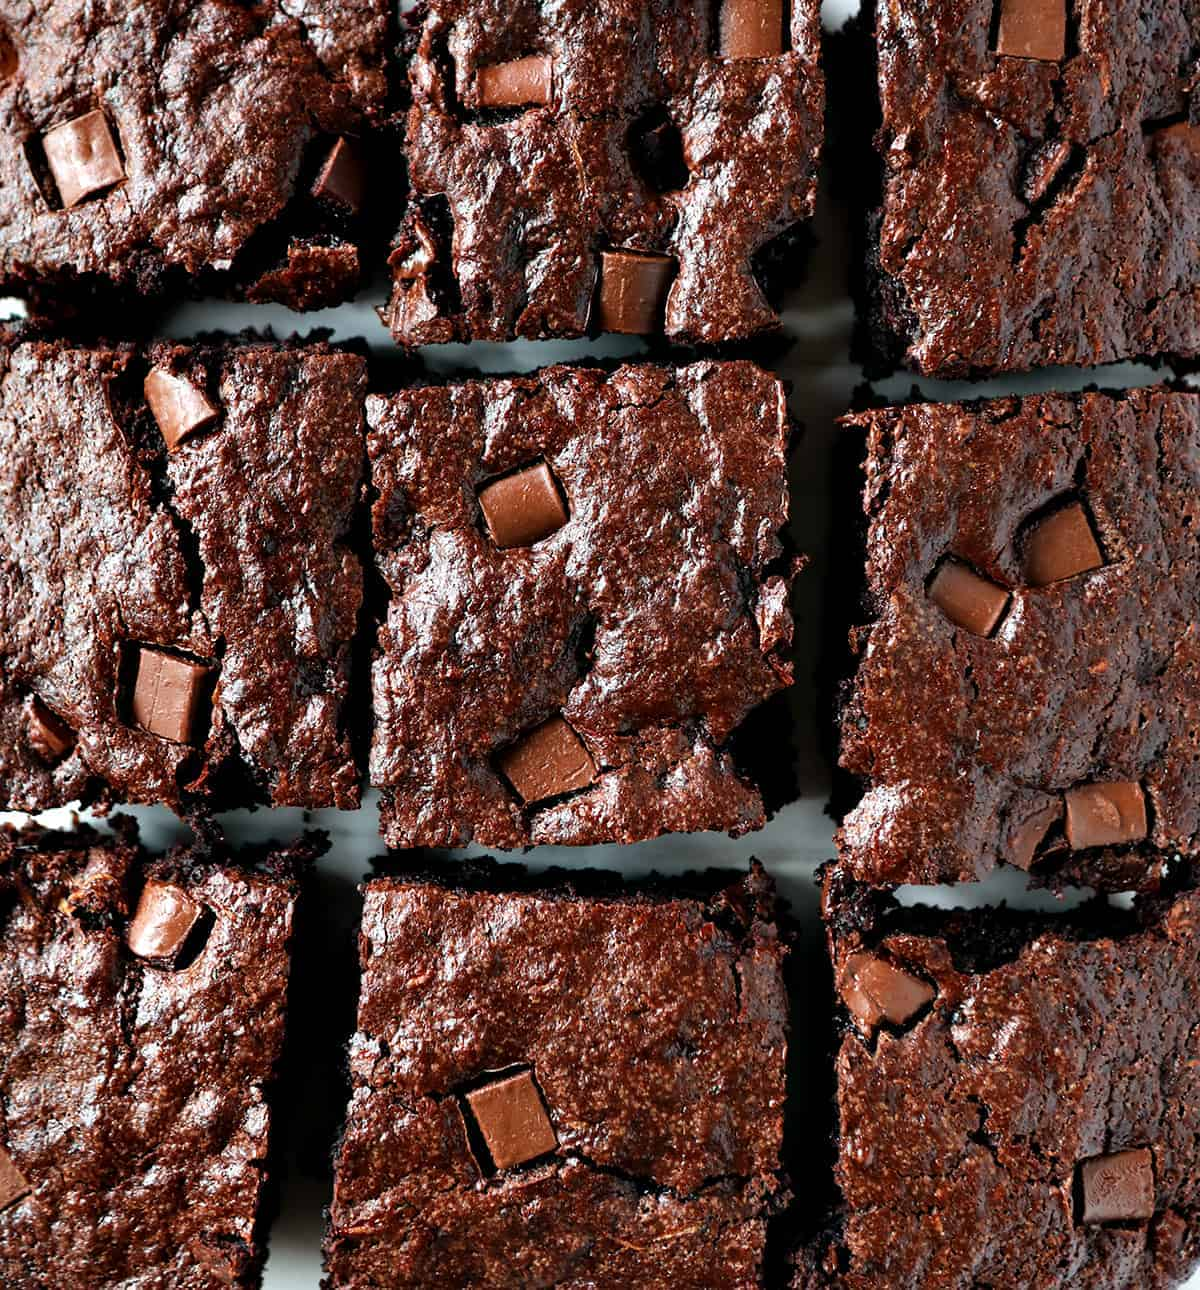 Eggless Brownies Zucchini Brownie From Overhead Showing Top Texture